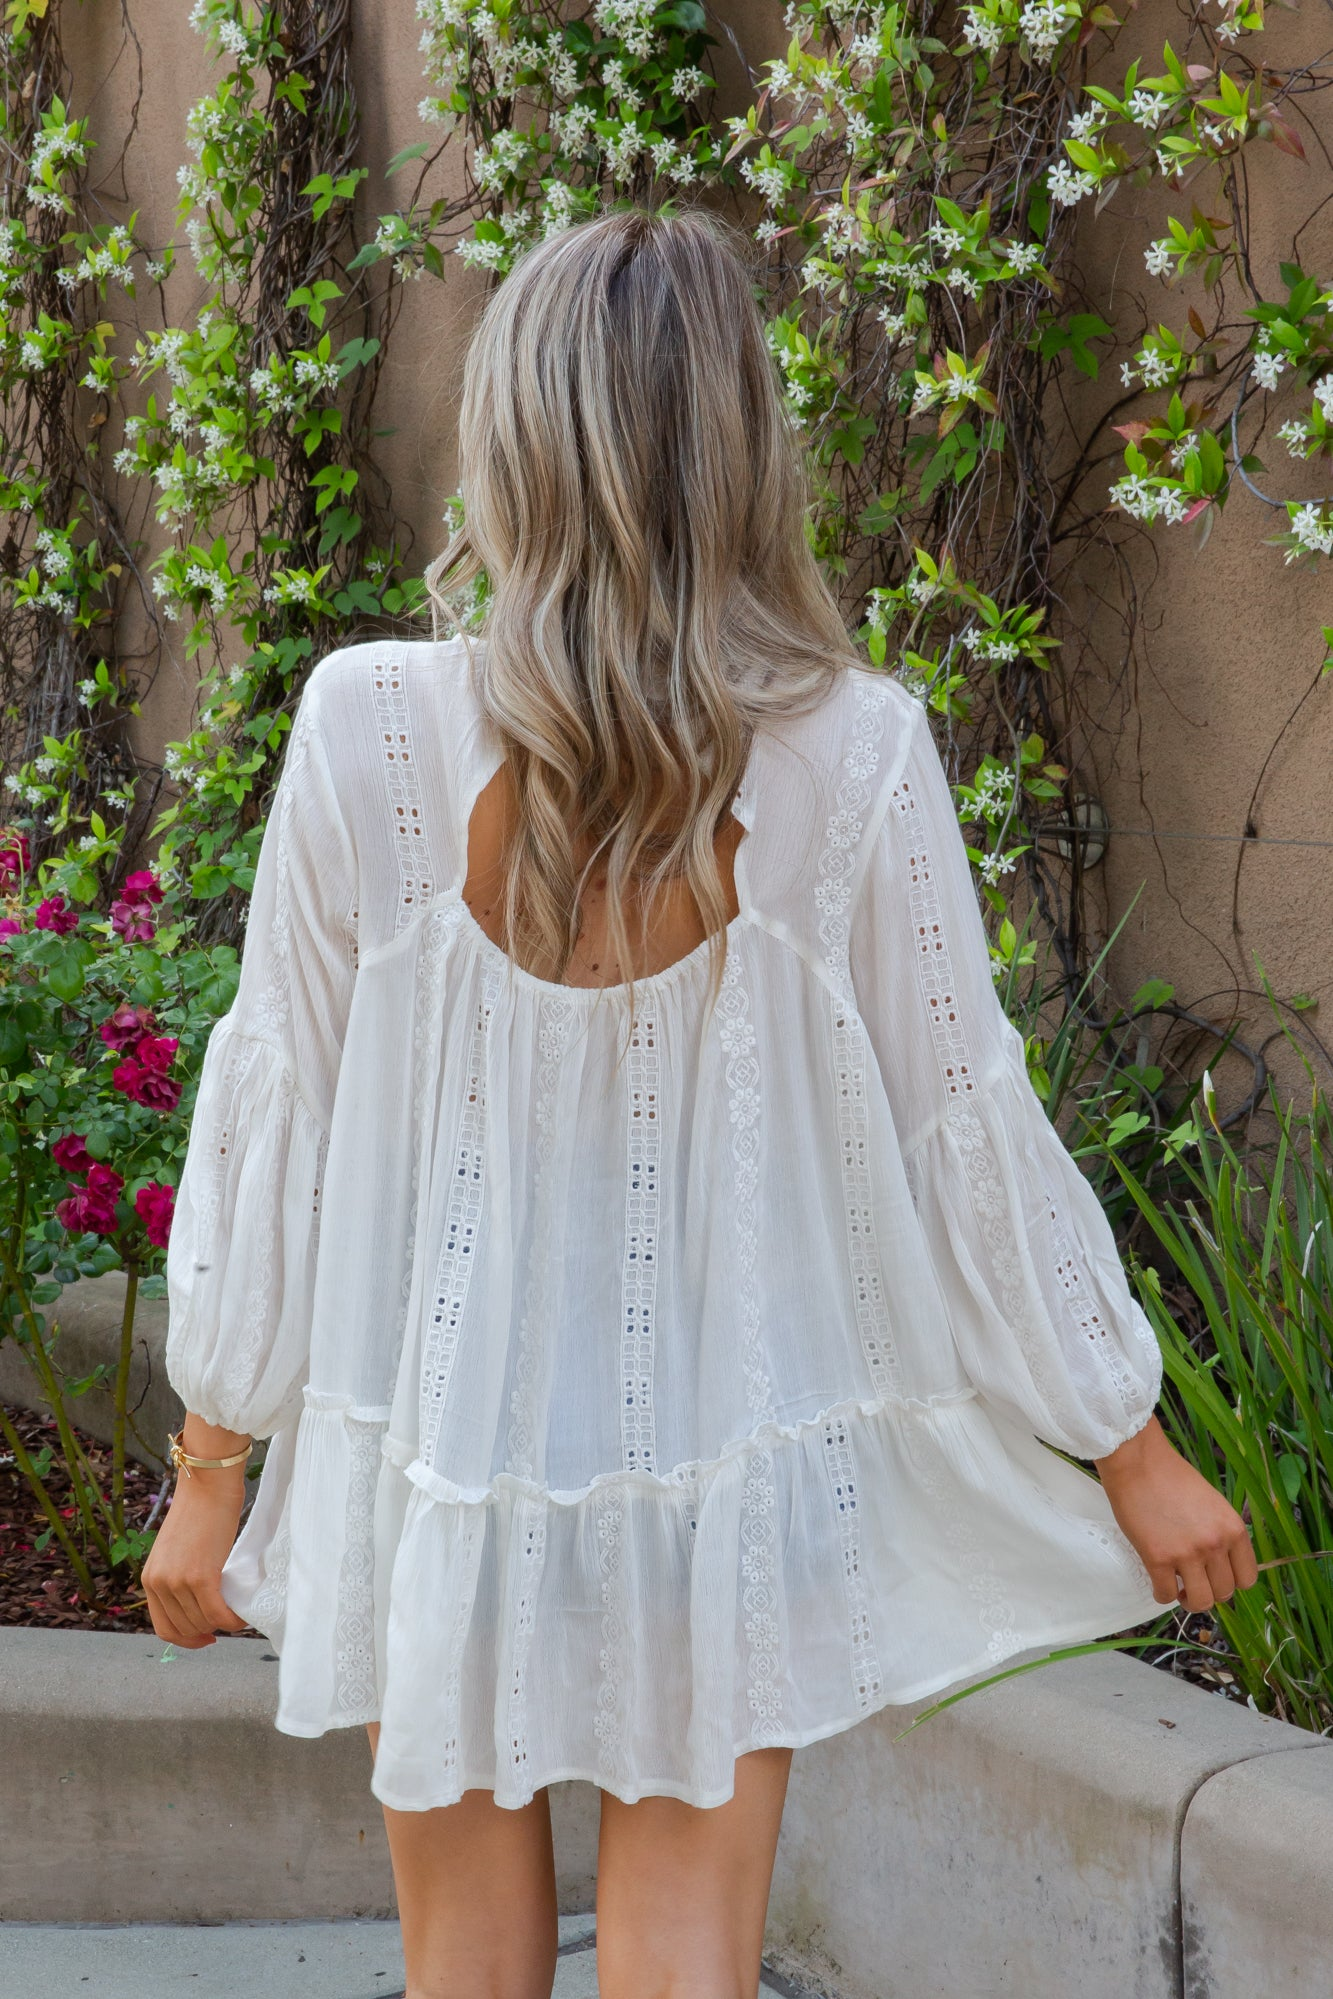 Oia Off White Tunic - llacie